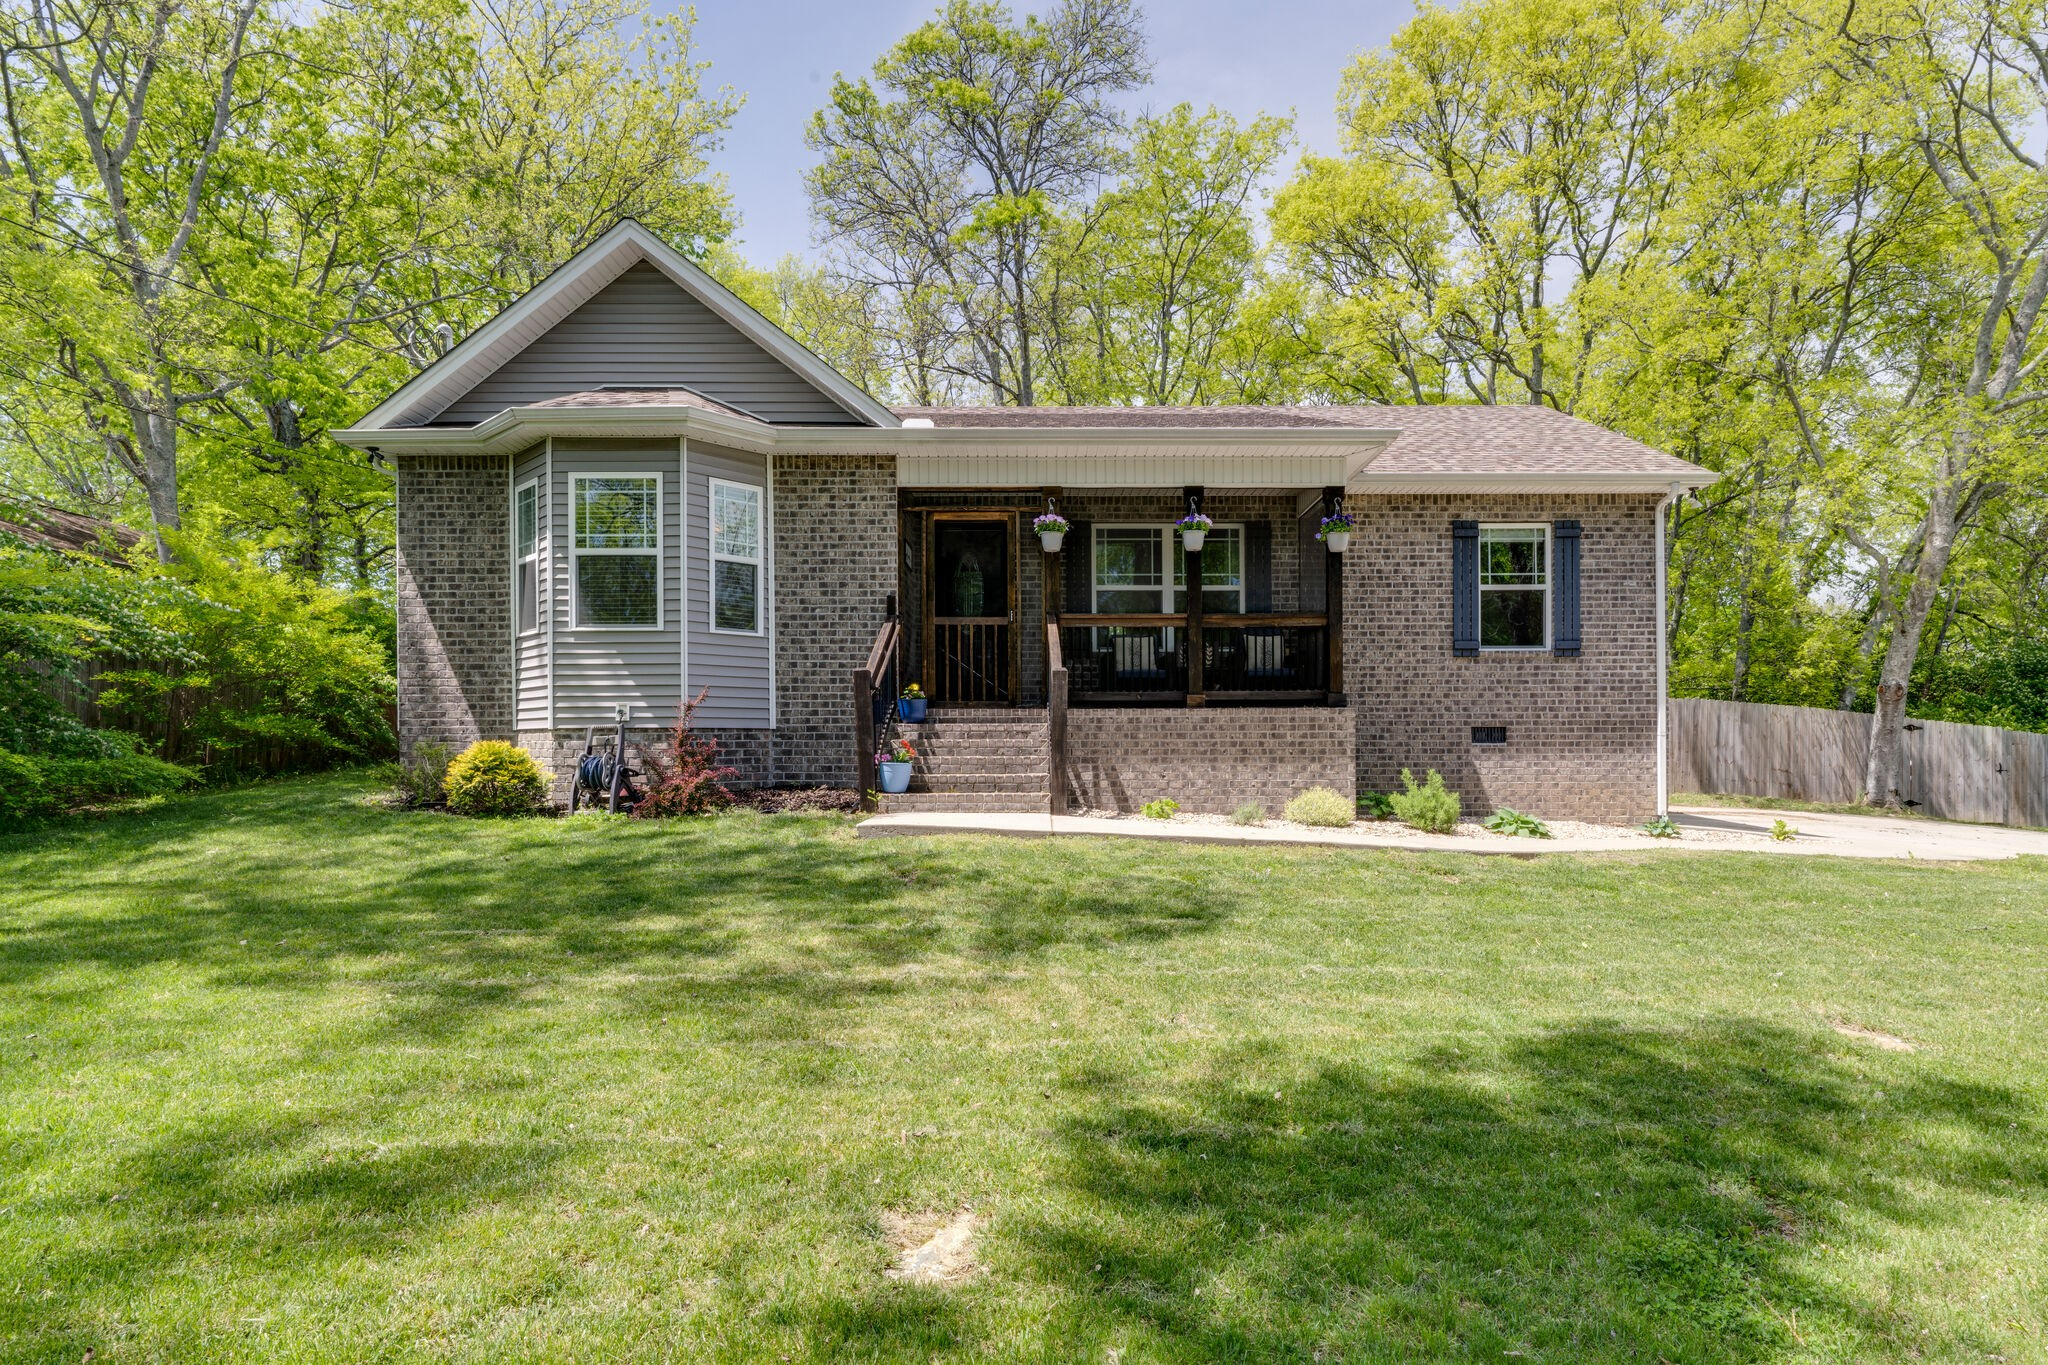 165 New Shackle Island Rd Property Photo - Hendersonville, TN real estate listing